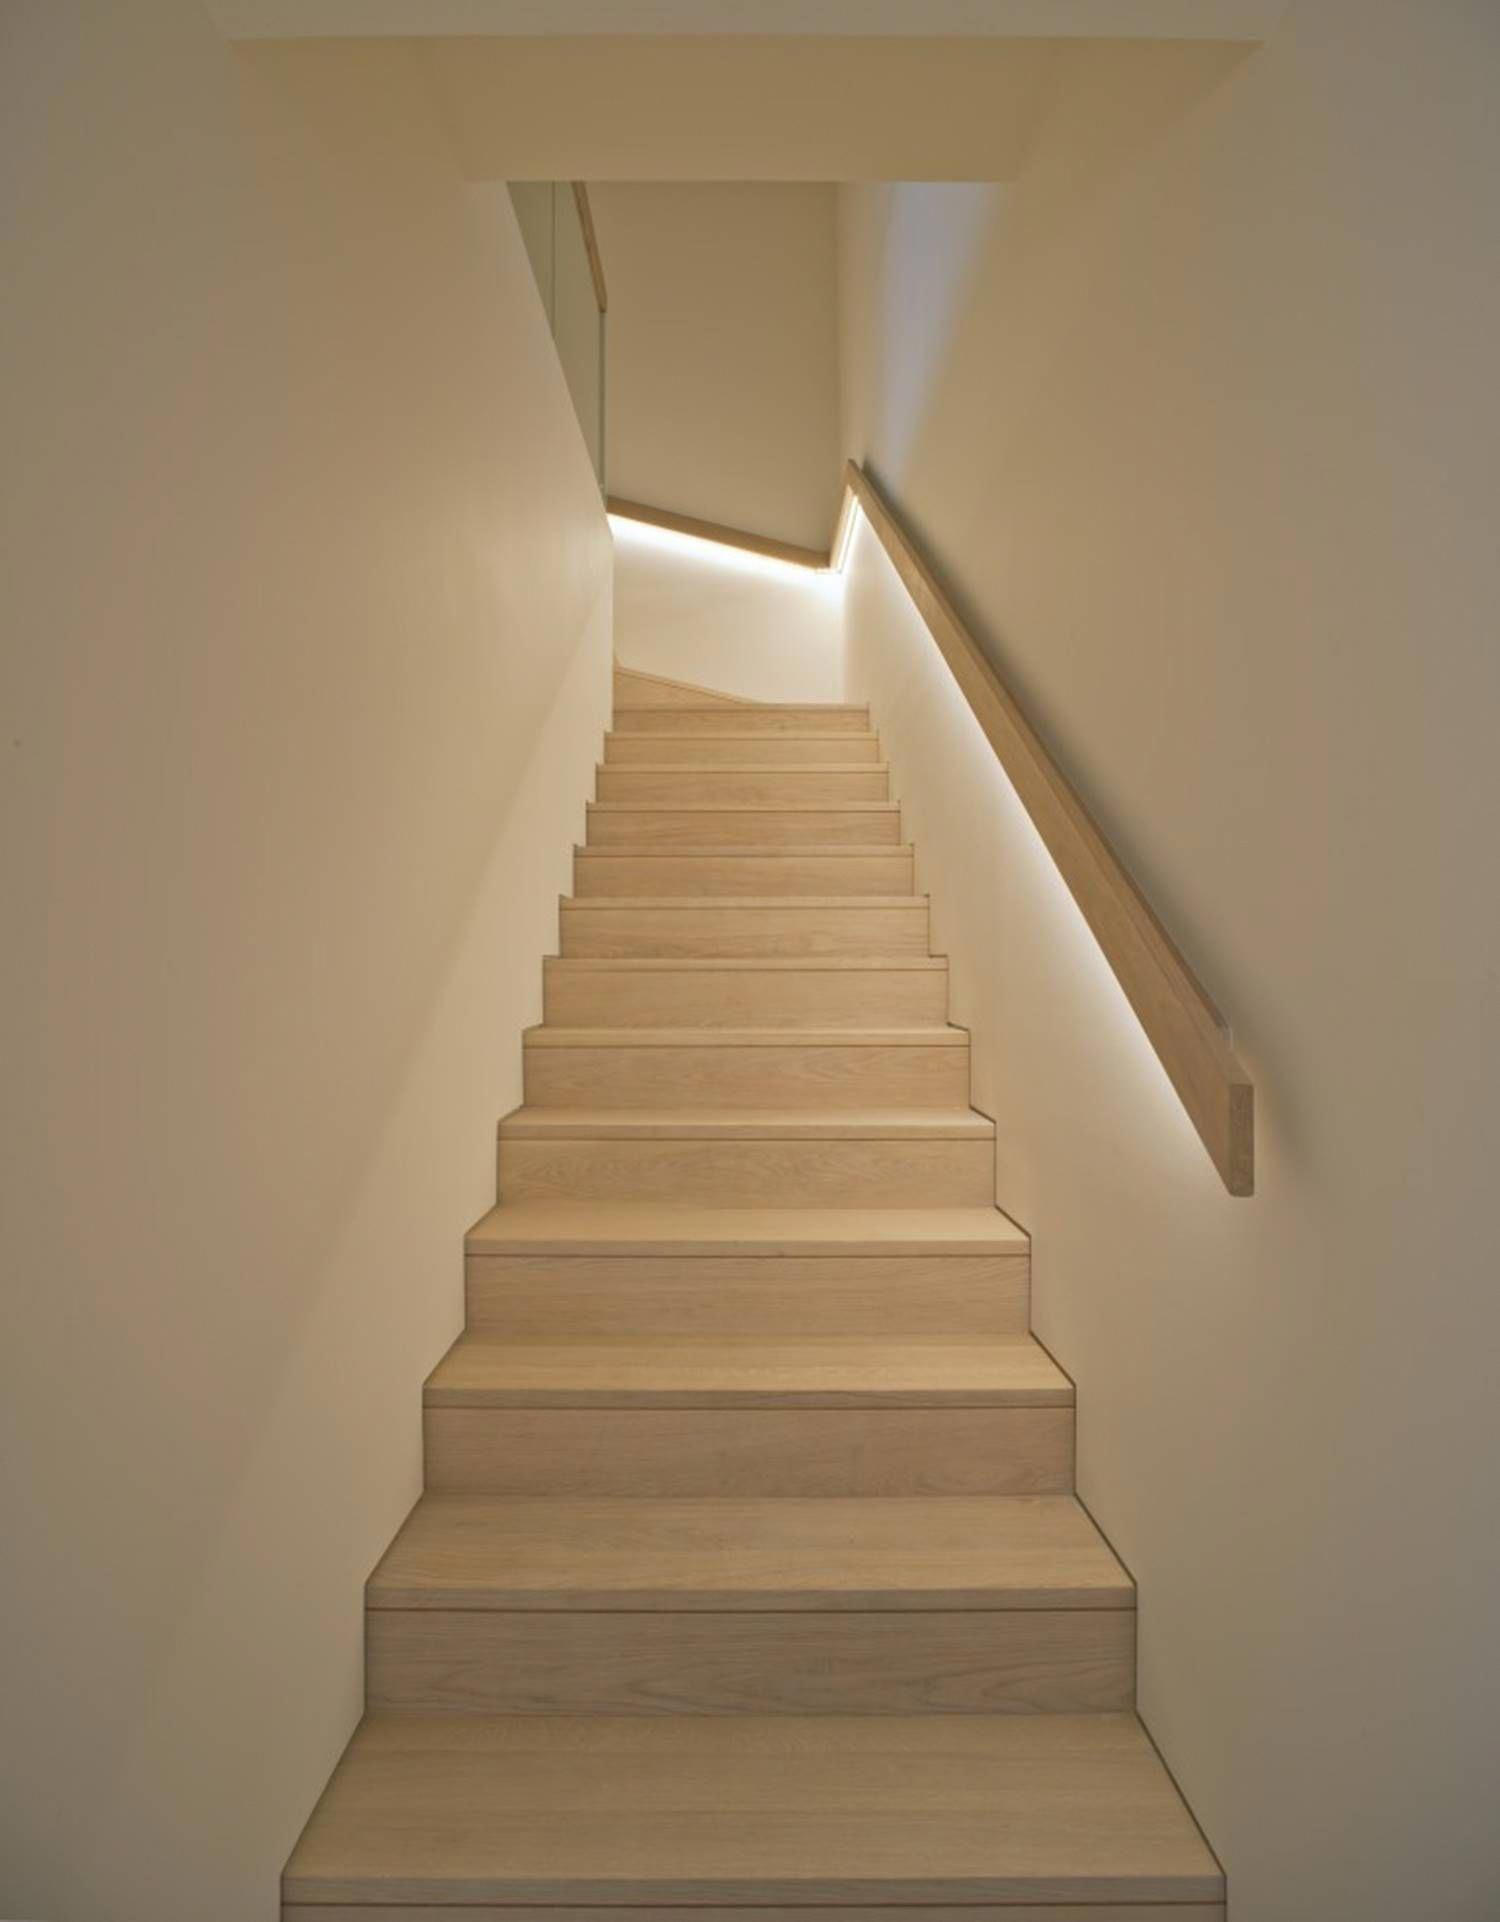 Awe Inspiring Grand Staircase Go Look At Our Site For More Plans Grandstaircase Handlauf Treppe Treppenhandlauf Treppe Holz